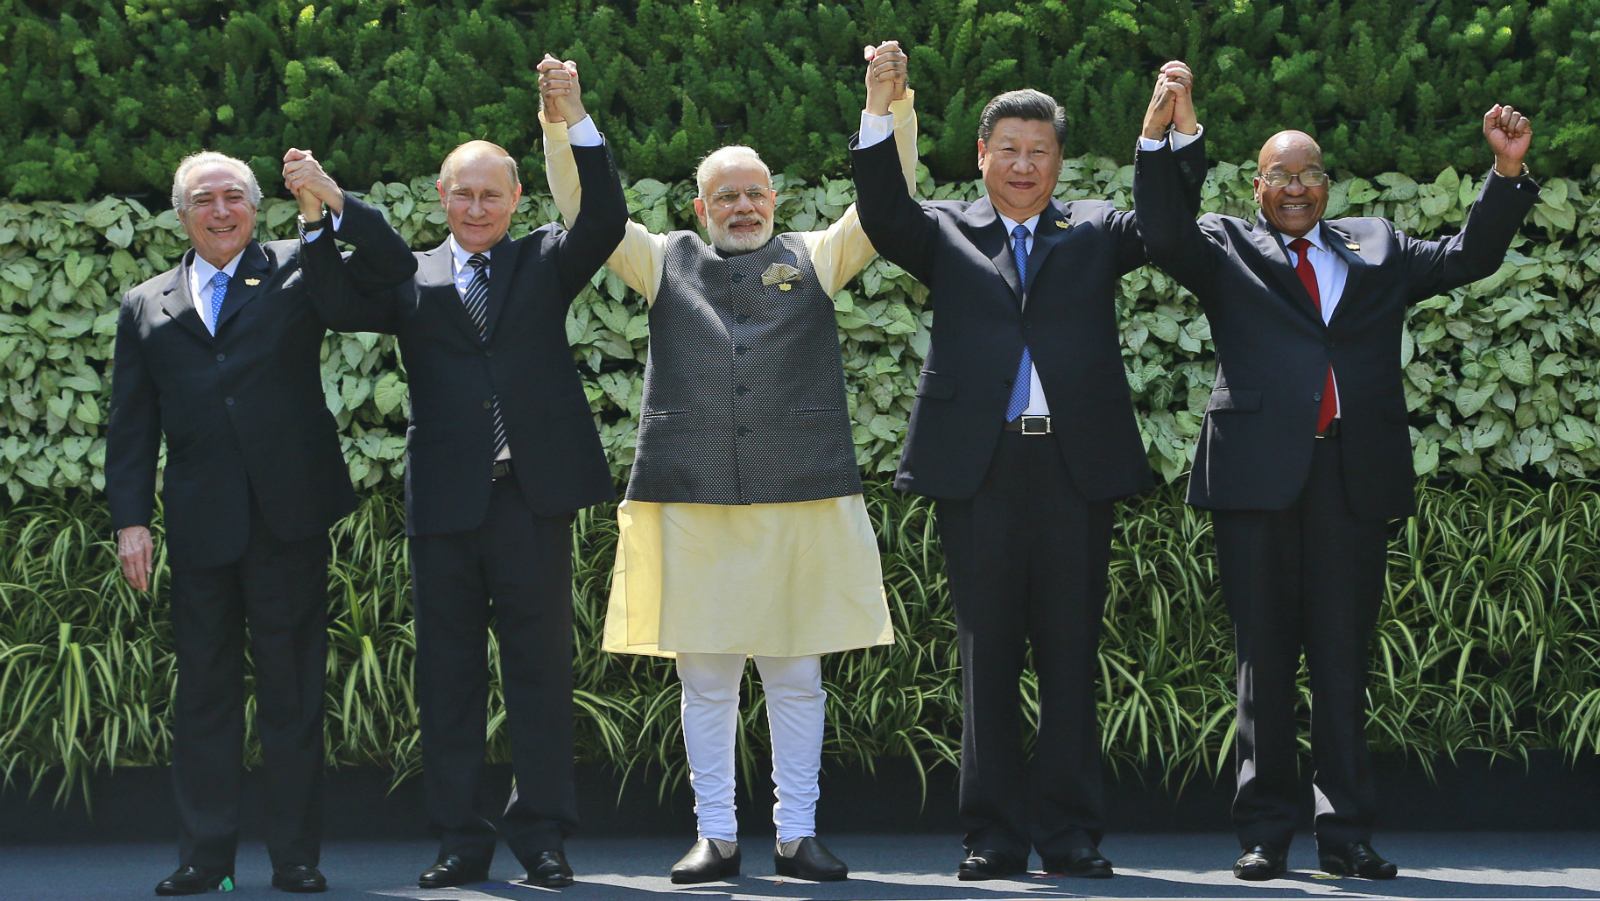 Leaders of BRICS countries, from left, Brazilian President Michel Temer, Russian President Vladimir Putin, Indian Prime Minister Narendra Modi, Chinese President Xi Jinping, and South African President Jacob Zuma raise their hand for a group photo at the start of their Summit in Goa, India, Sunday, Oct. 16, 2016. Leaders of five of the world's fast-rising powers are meeting in the southwestern Indian state of Goa for their annual summit at a time when their ability to shape the global dialogue on international politics and finance is increasingly being questioned. Brazil, Russia, India, China and South Africa, or BRICS, face the tough task of asserting their growing influence as a power group even as they bridge their own trade rivalries to help grow their economies. (AP Photo/ Anupam Nath)